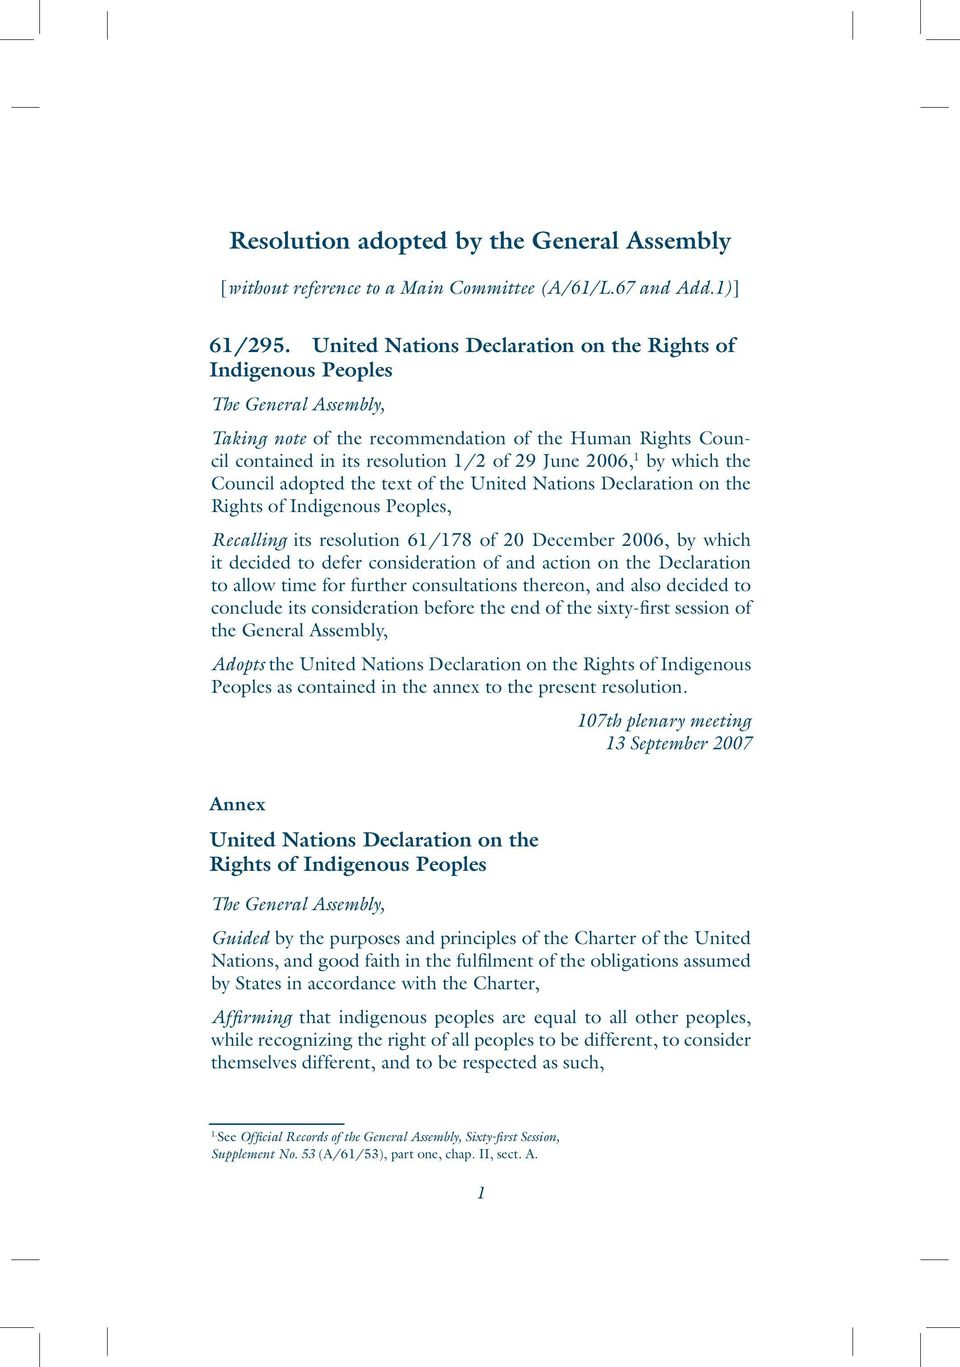 by which the Council adopted the text of the United Nations Declaration on the Rights of Indigenous Peoples, Recalling its resolution 61/178 of 20 December 2006, by which it decided to defer